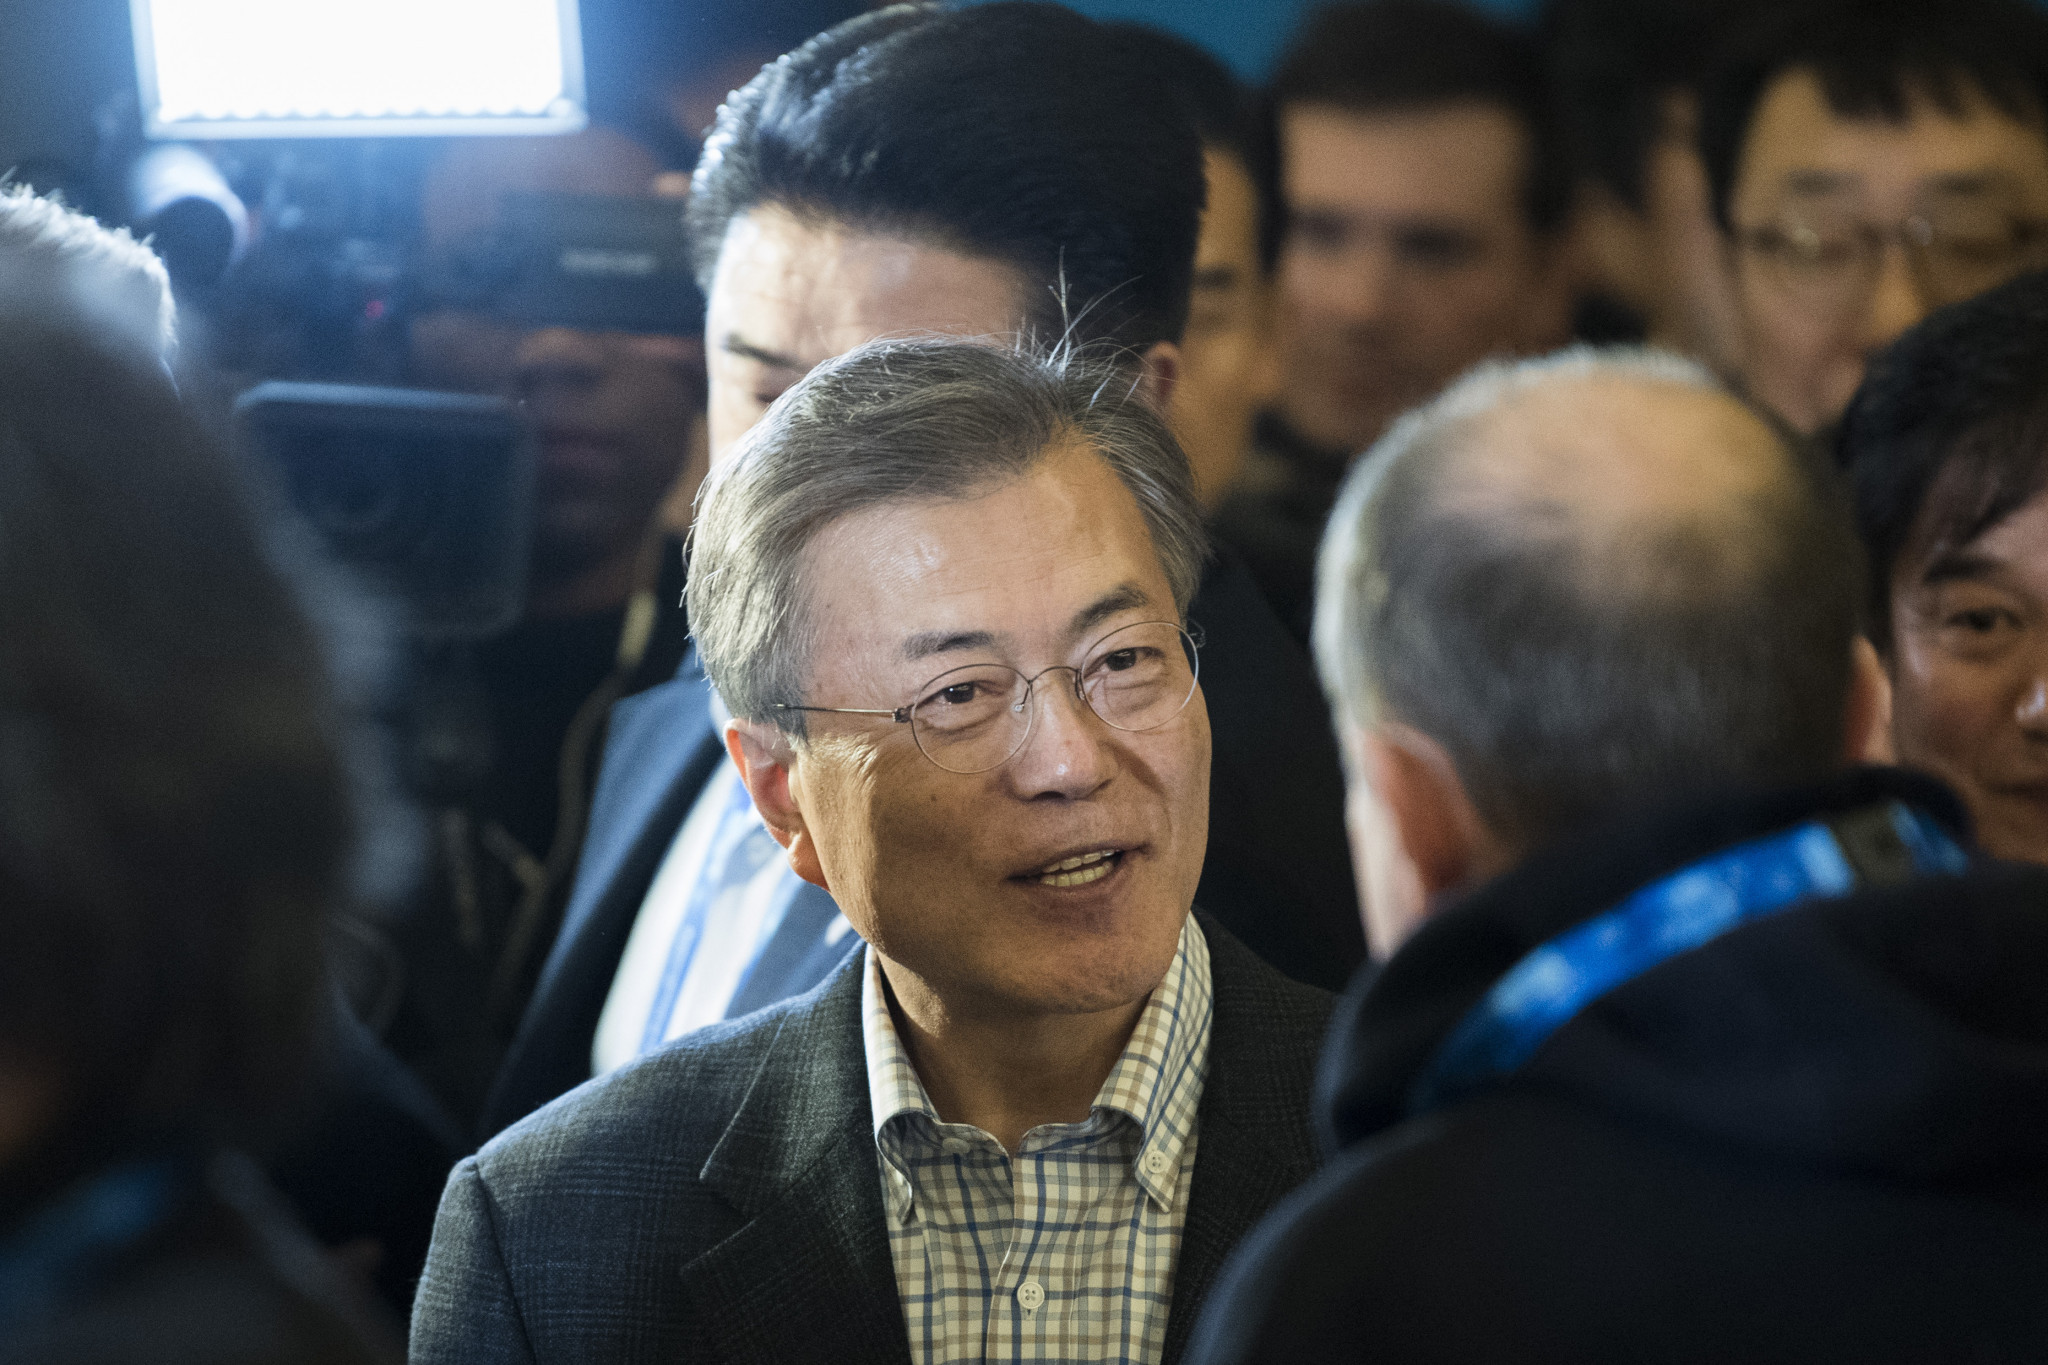 Moon hails presence of Russian athletes at Pyeongchang 2018 despite doping scandal